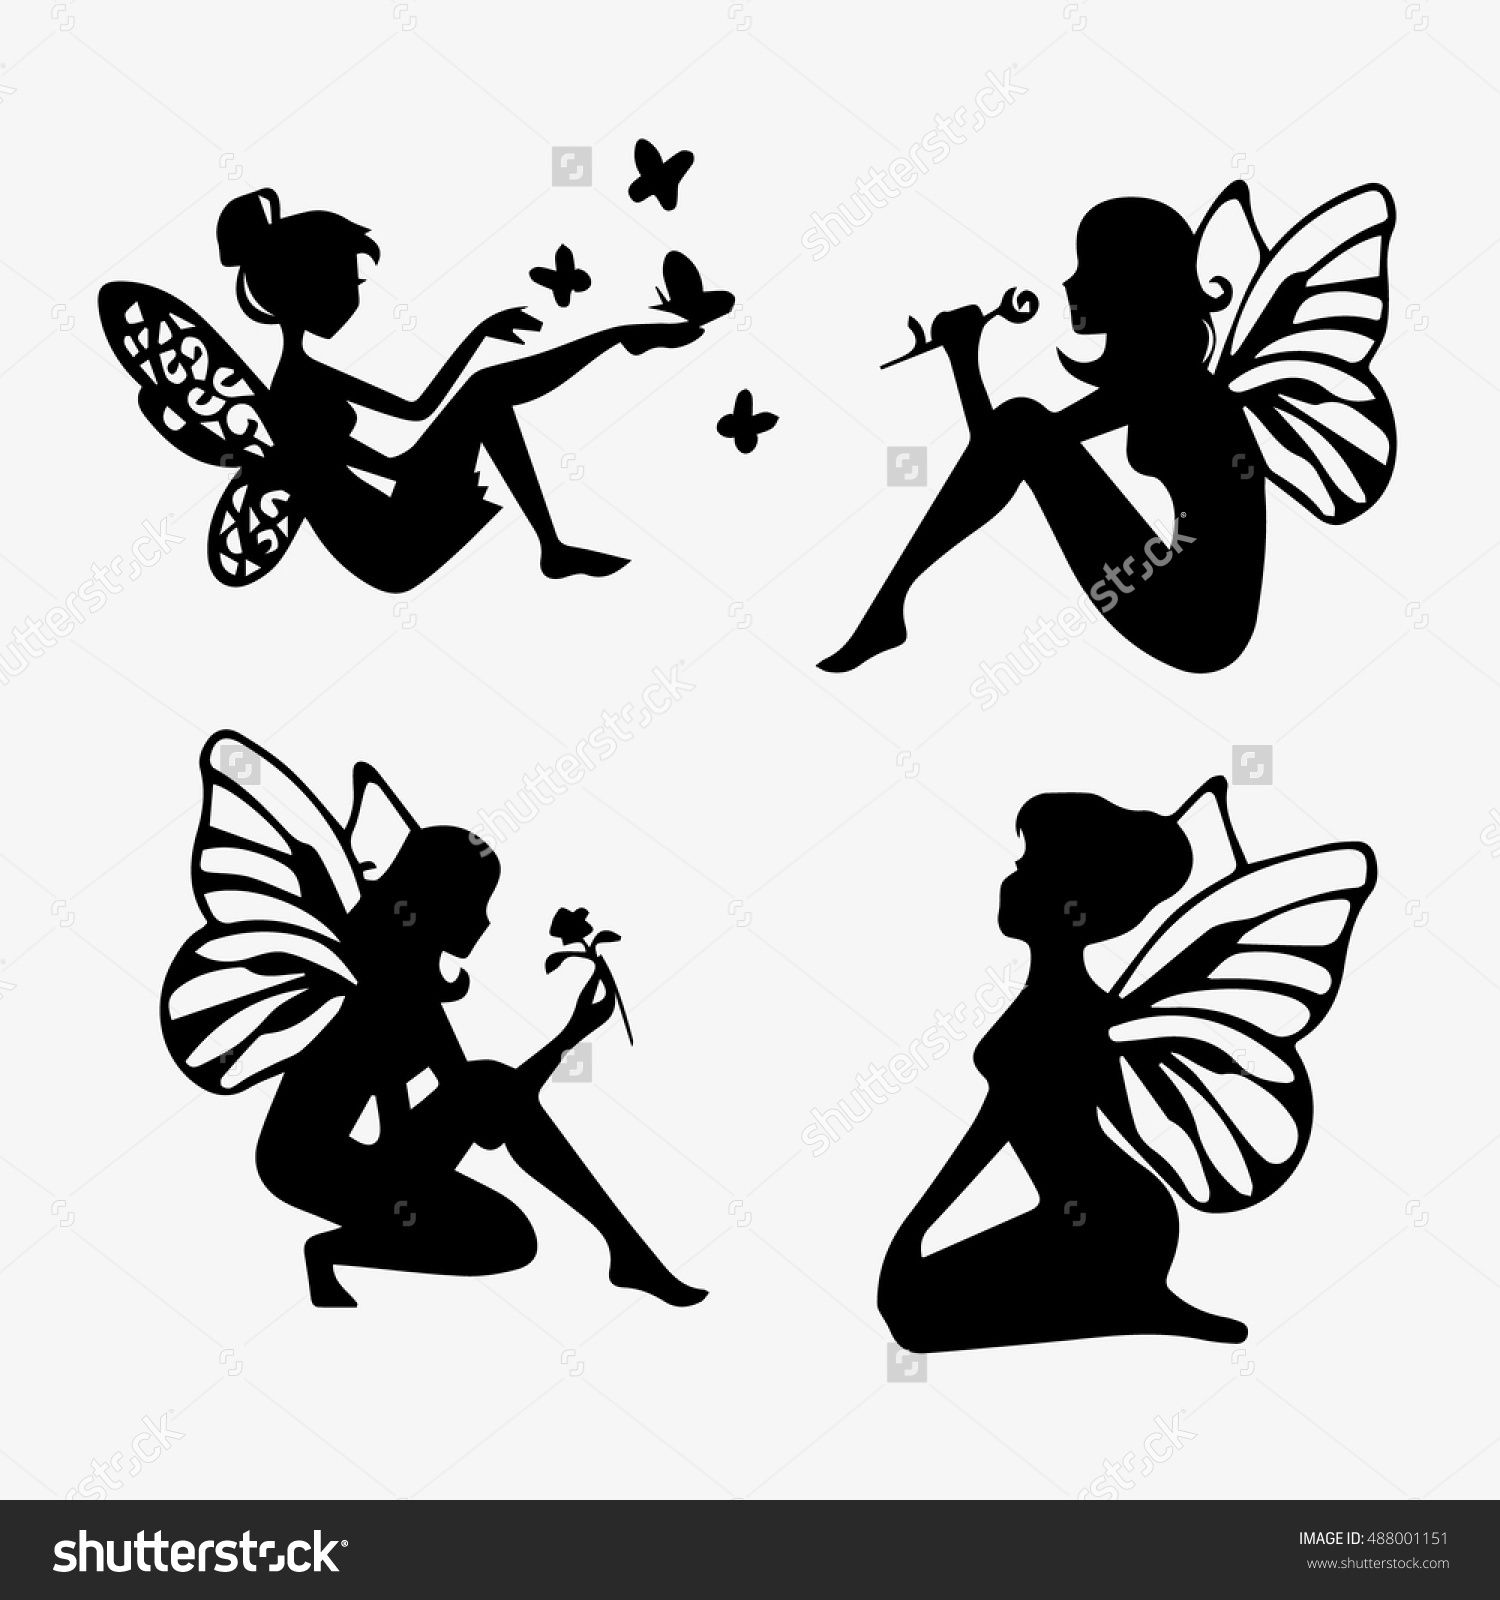 fairy silhouette clip art free at getdrawings com free for rh getdrawings com fairy clipart free images tooth fairy clipart free